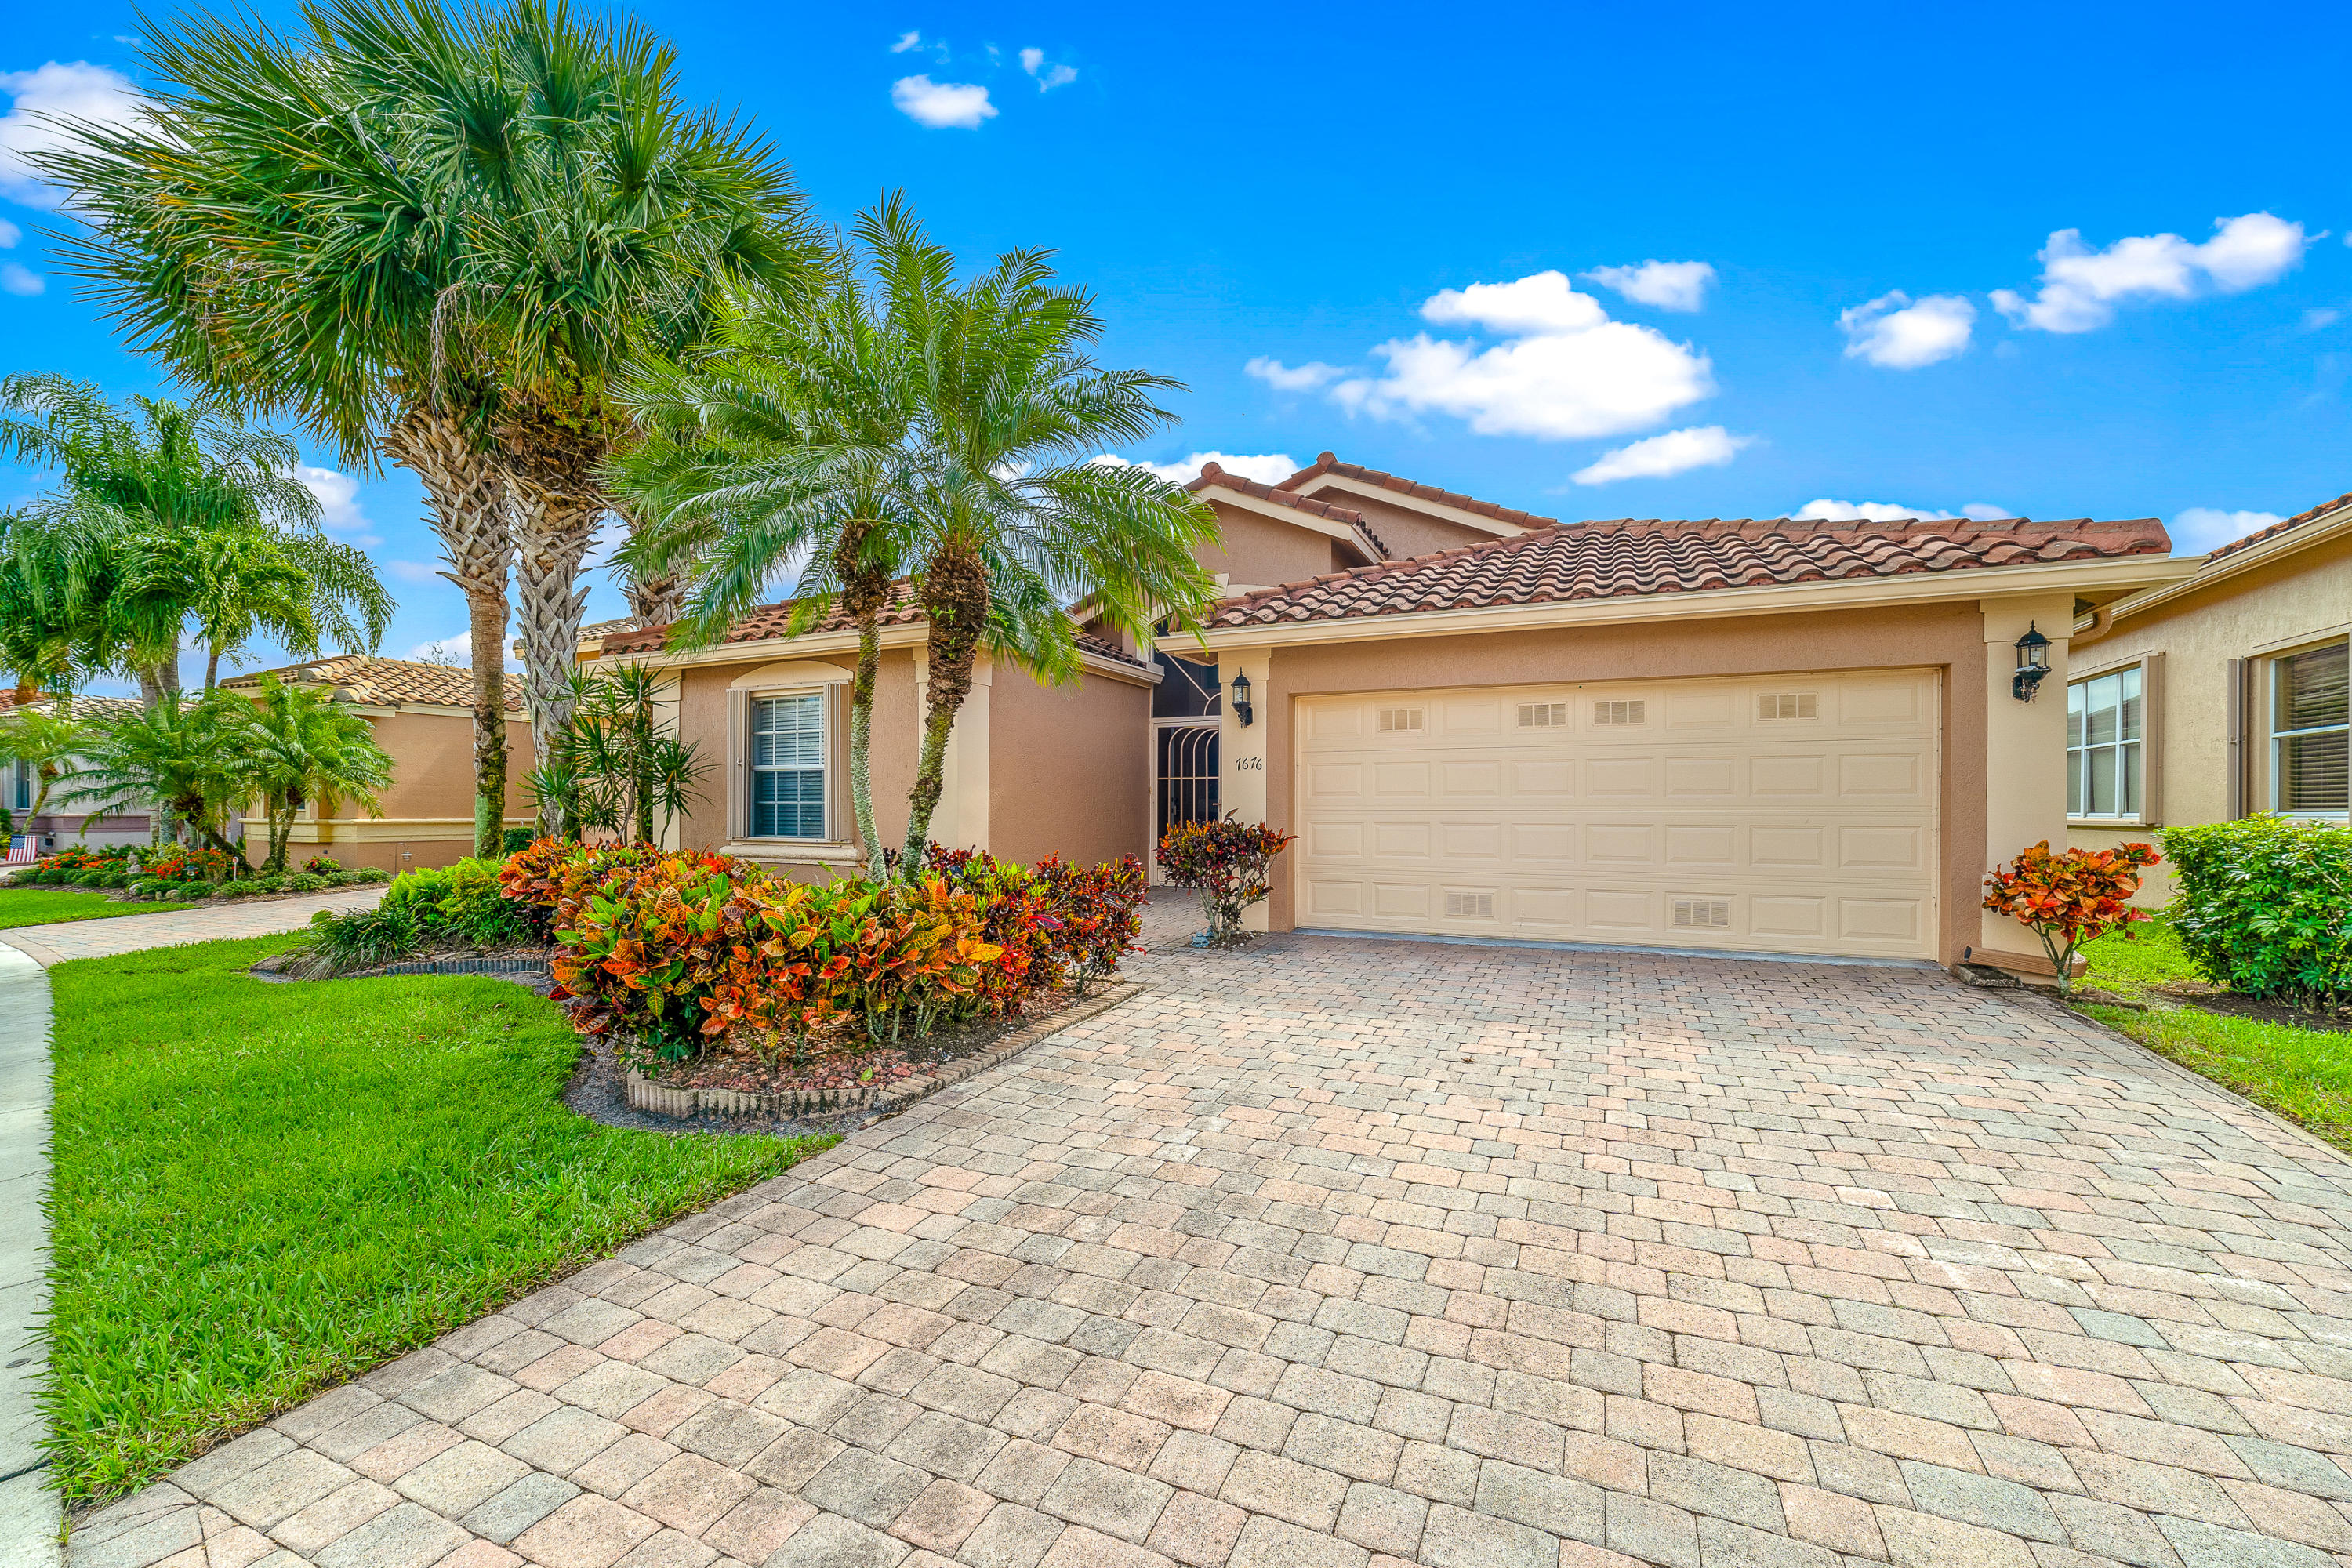 Photo of  Boynton Beach, FL 33472 MLS RX-10695424